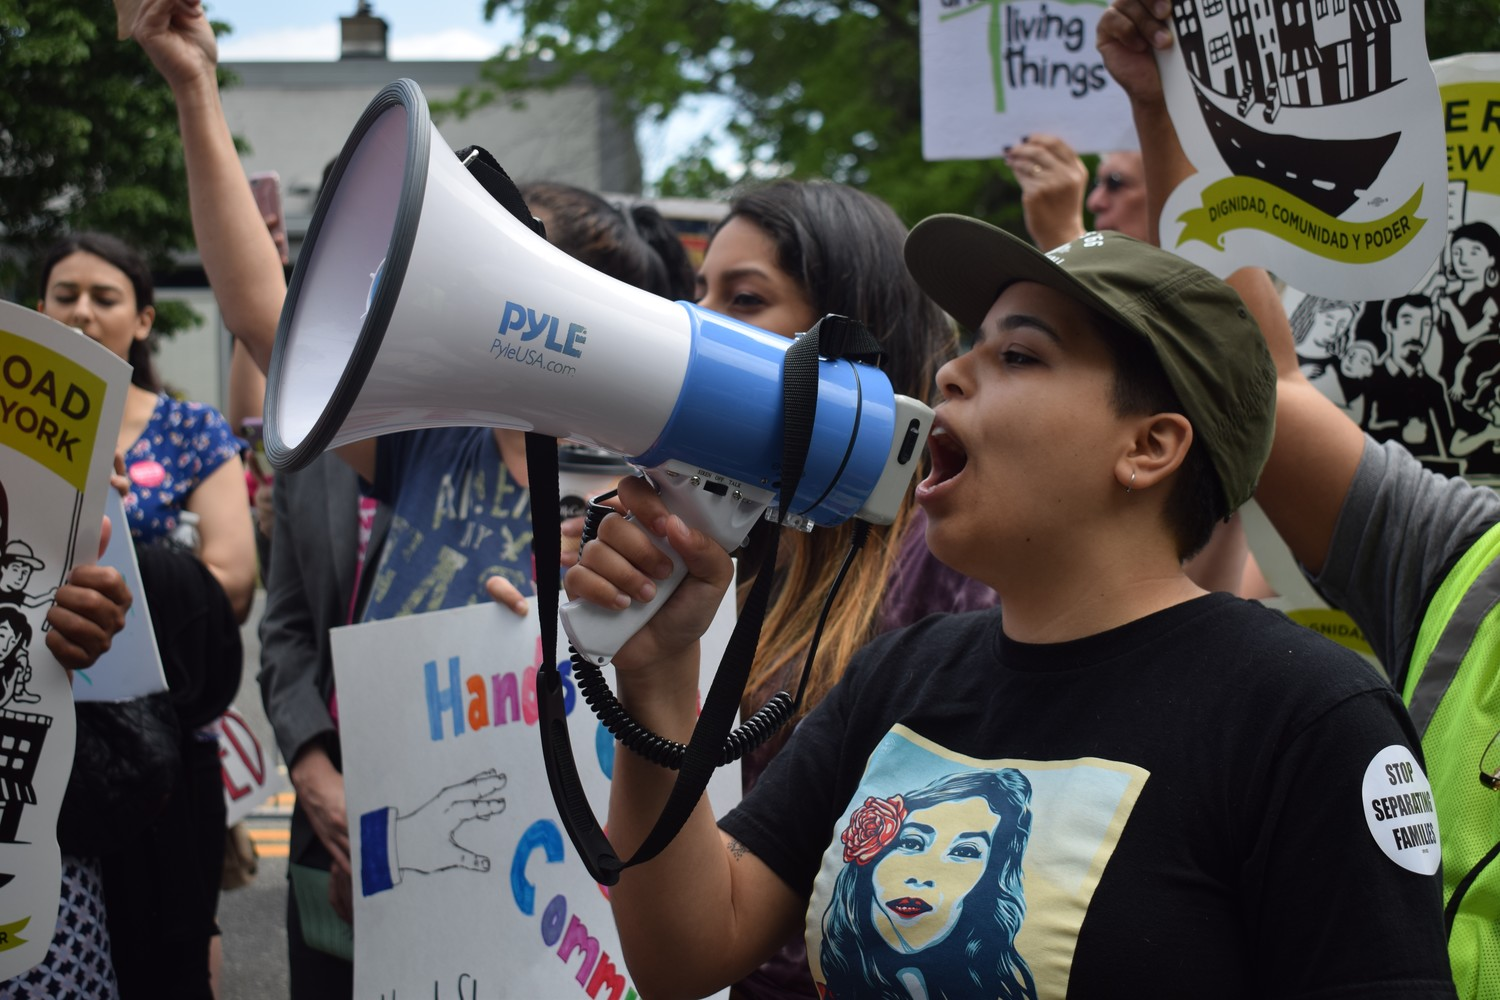 Newly naturalized American citizen Nicole Nuñez led the chanting among protesters on May 23.